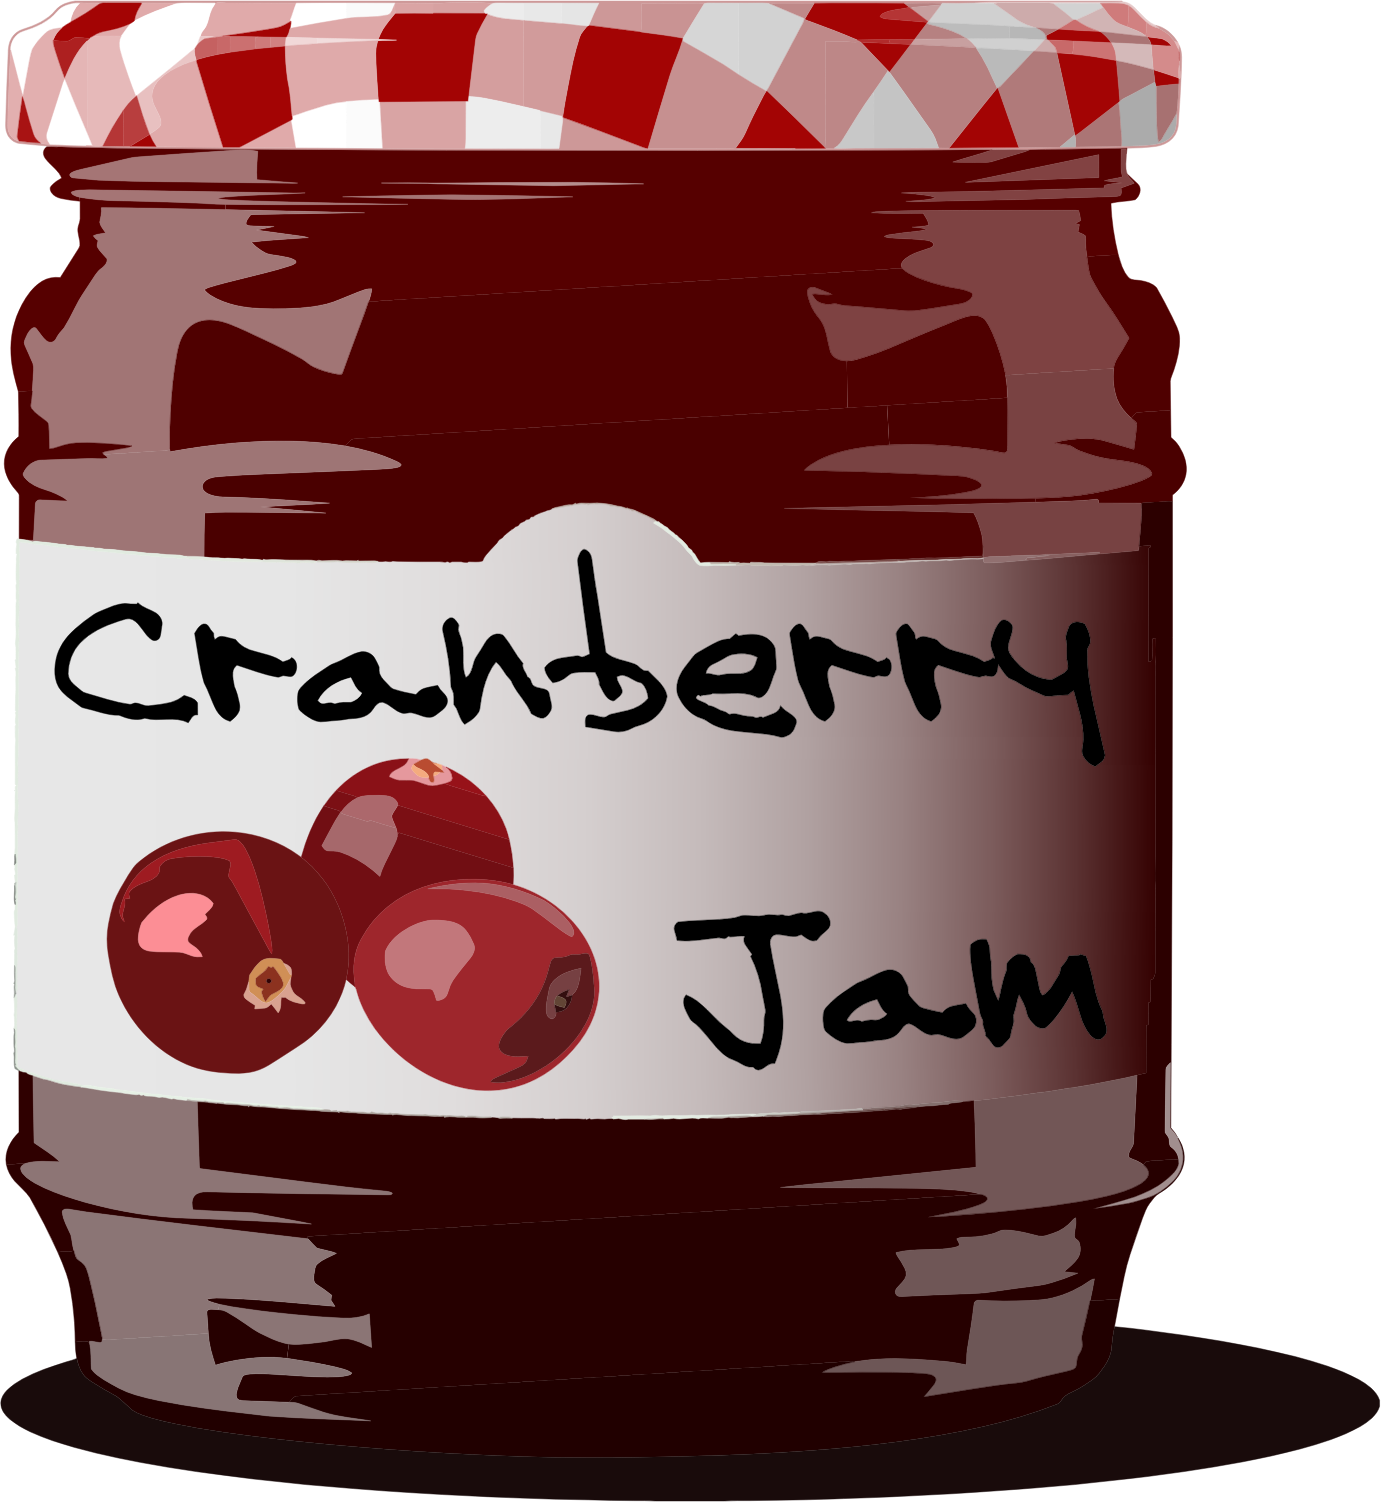 Free Jam Cliparts, Download Free Clip Art, Free Clip Art on.